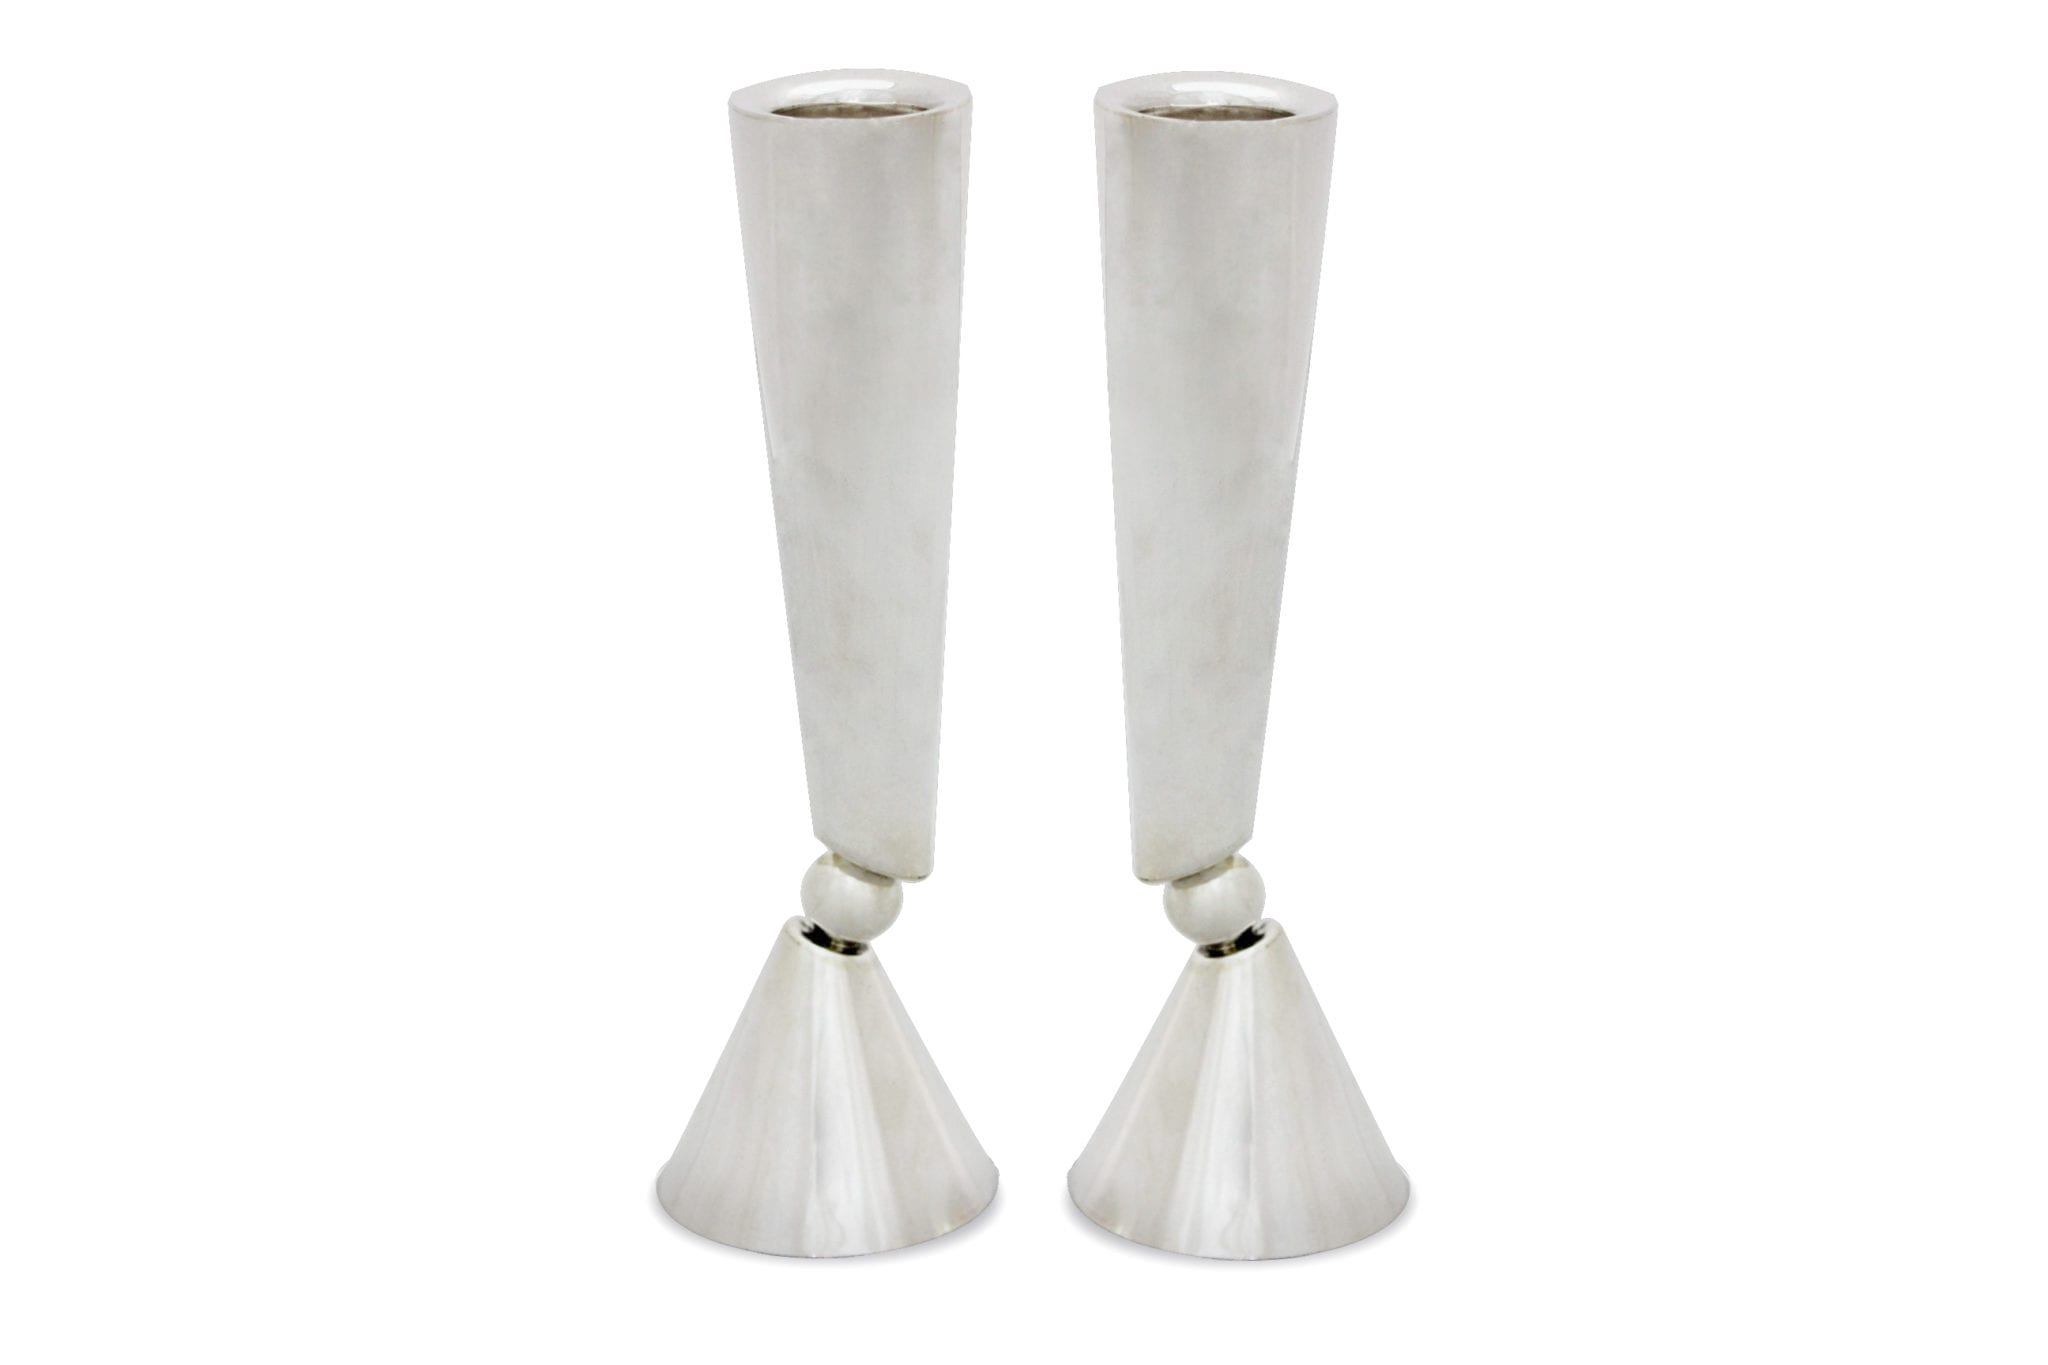 Modern sterling silver candlesticks. Shabbat Judaica made in Israel